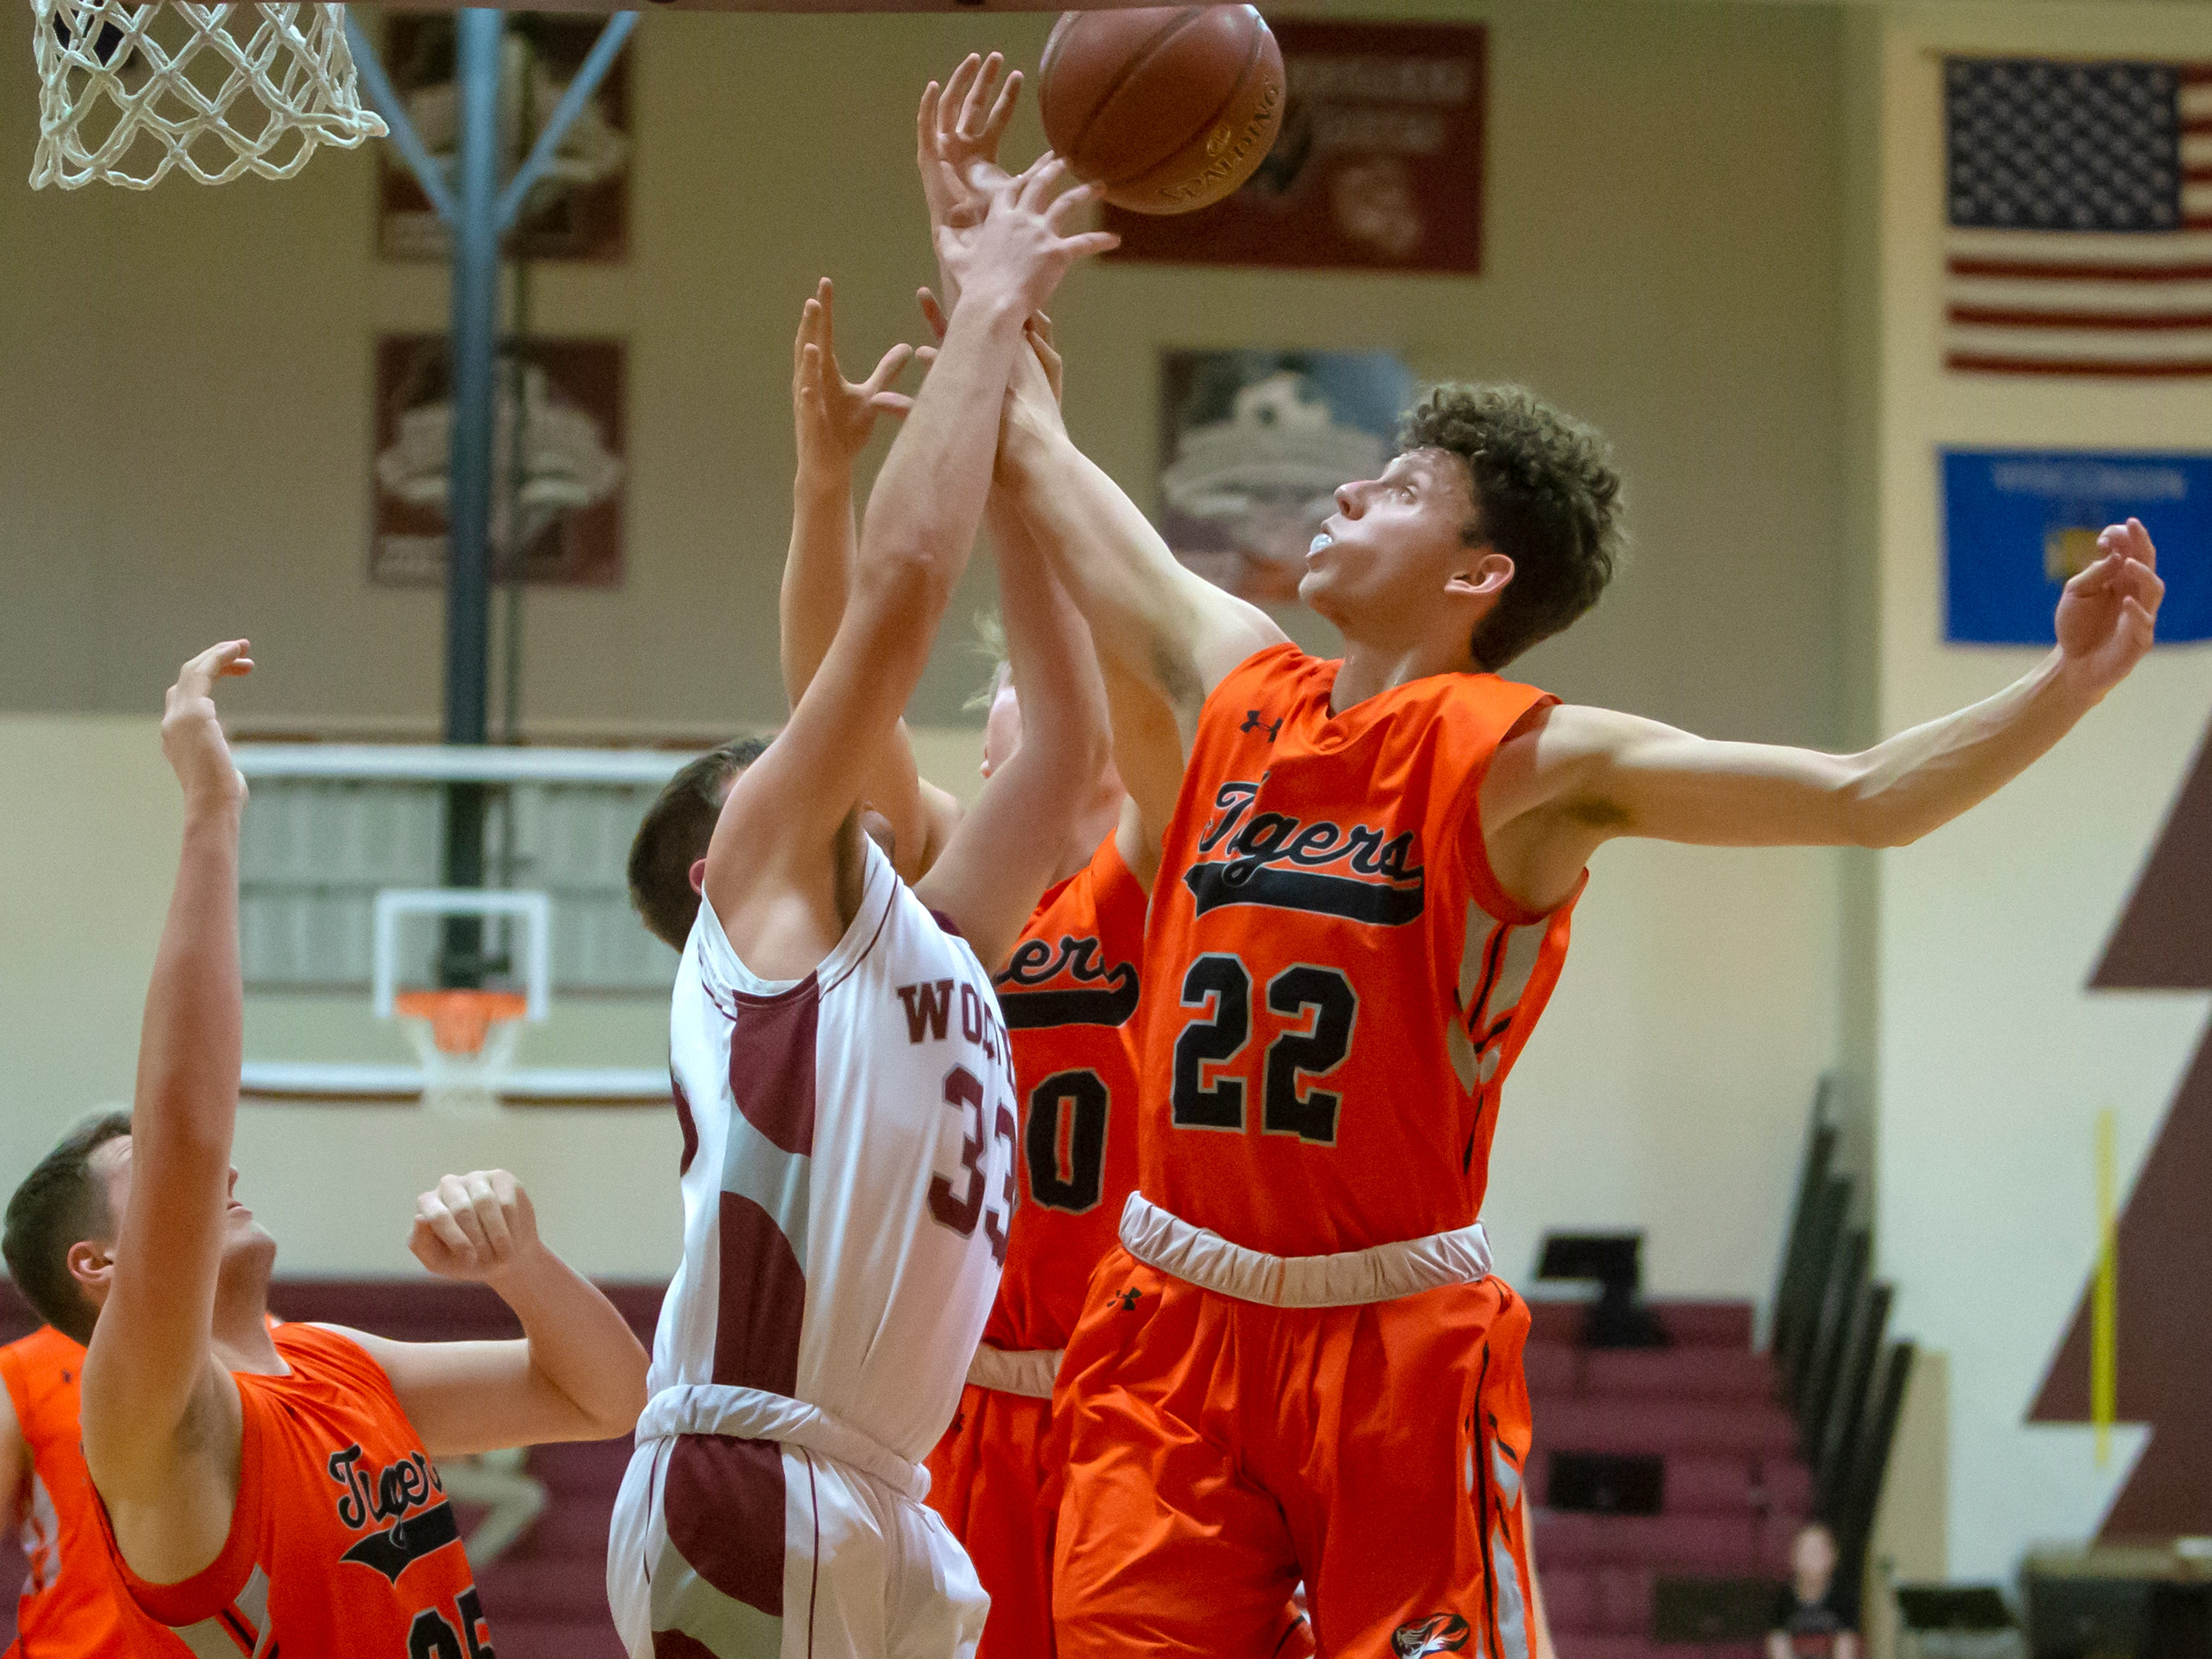 Ripon's Max Beuthin and Winneconne's Andrew Jensen go up for the rebound ball at Winneconne High School on Thursday, January 24, 2019.